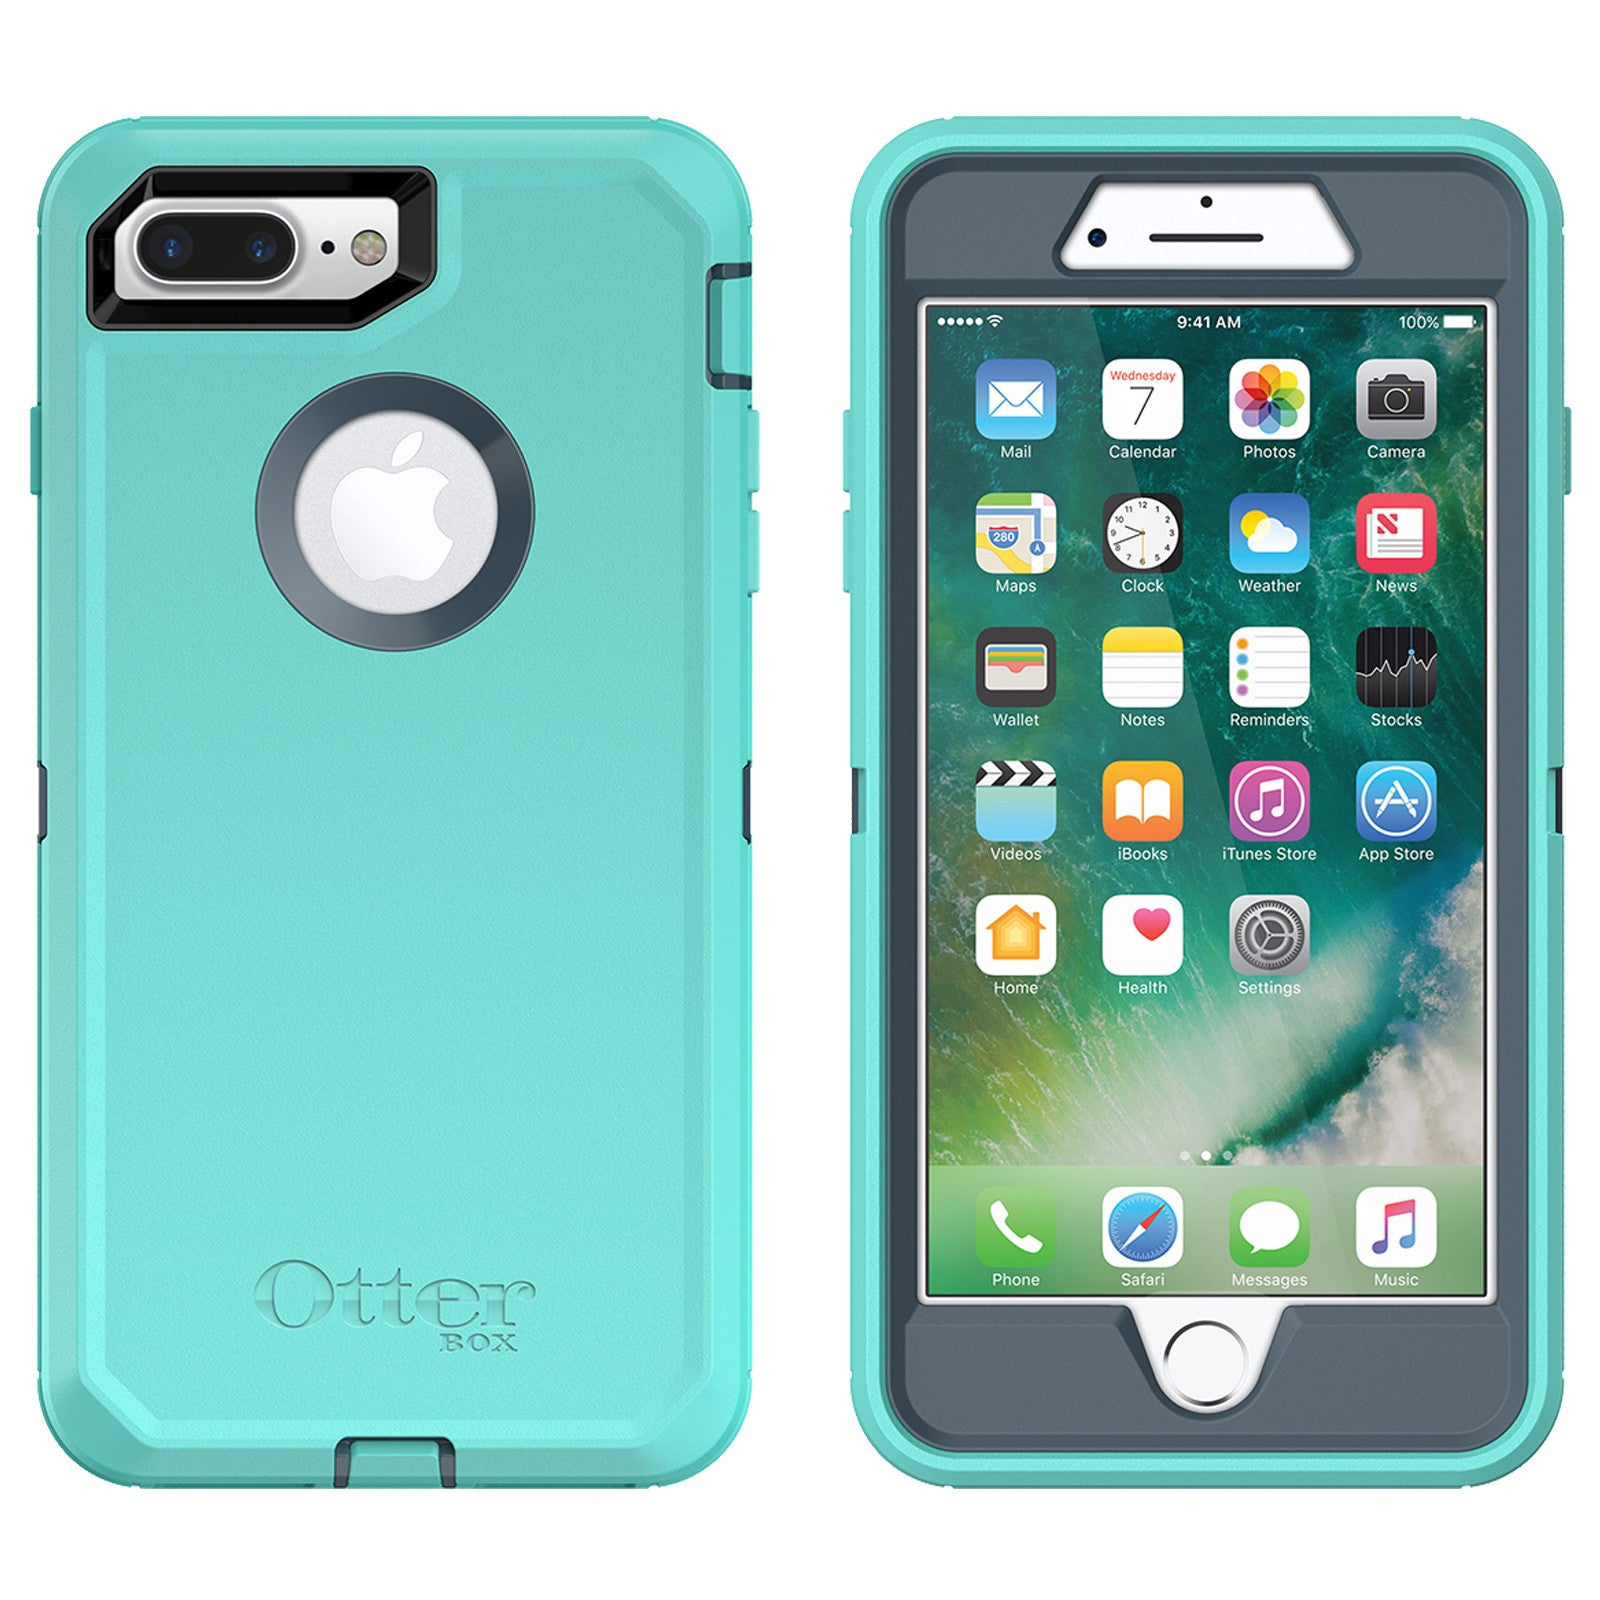 reputable site 893ee 9222c OtterBox Defender case for iPhone 7 Plus - Borealis Aqua